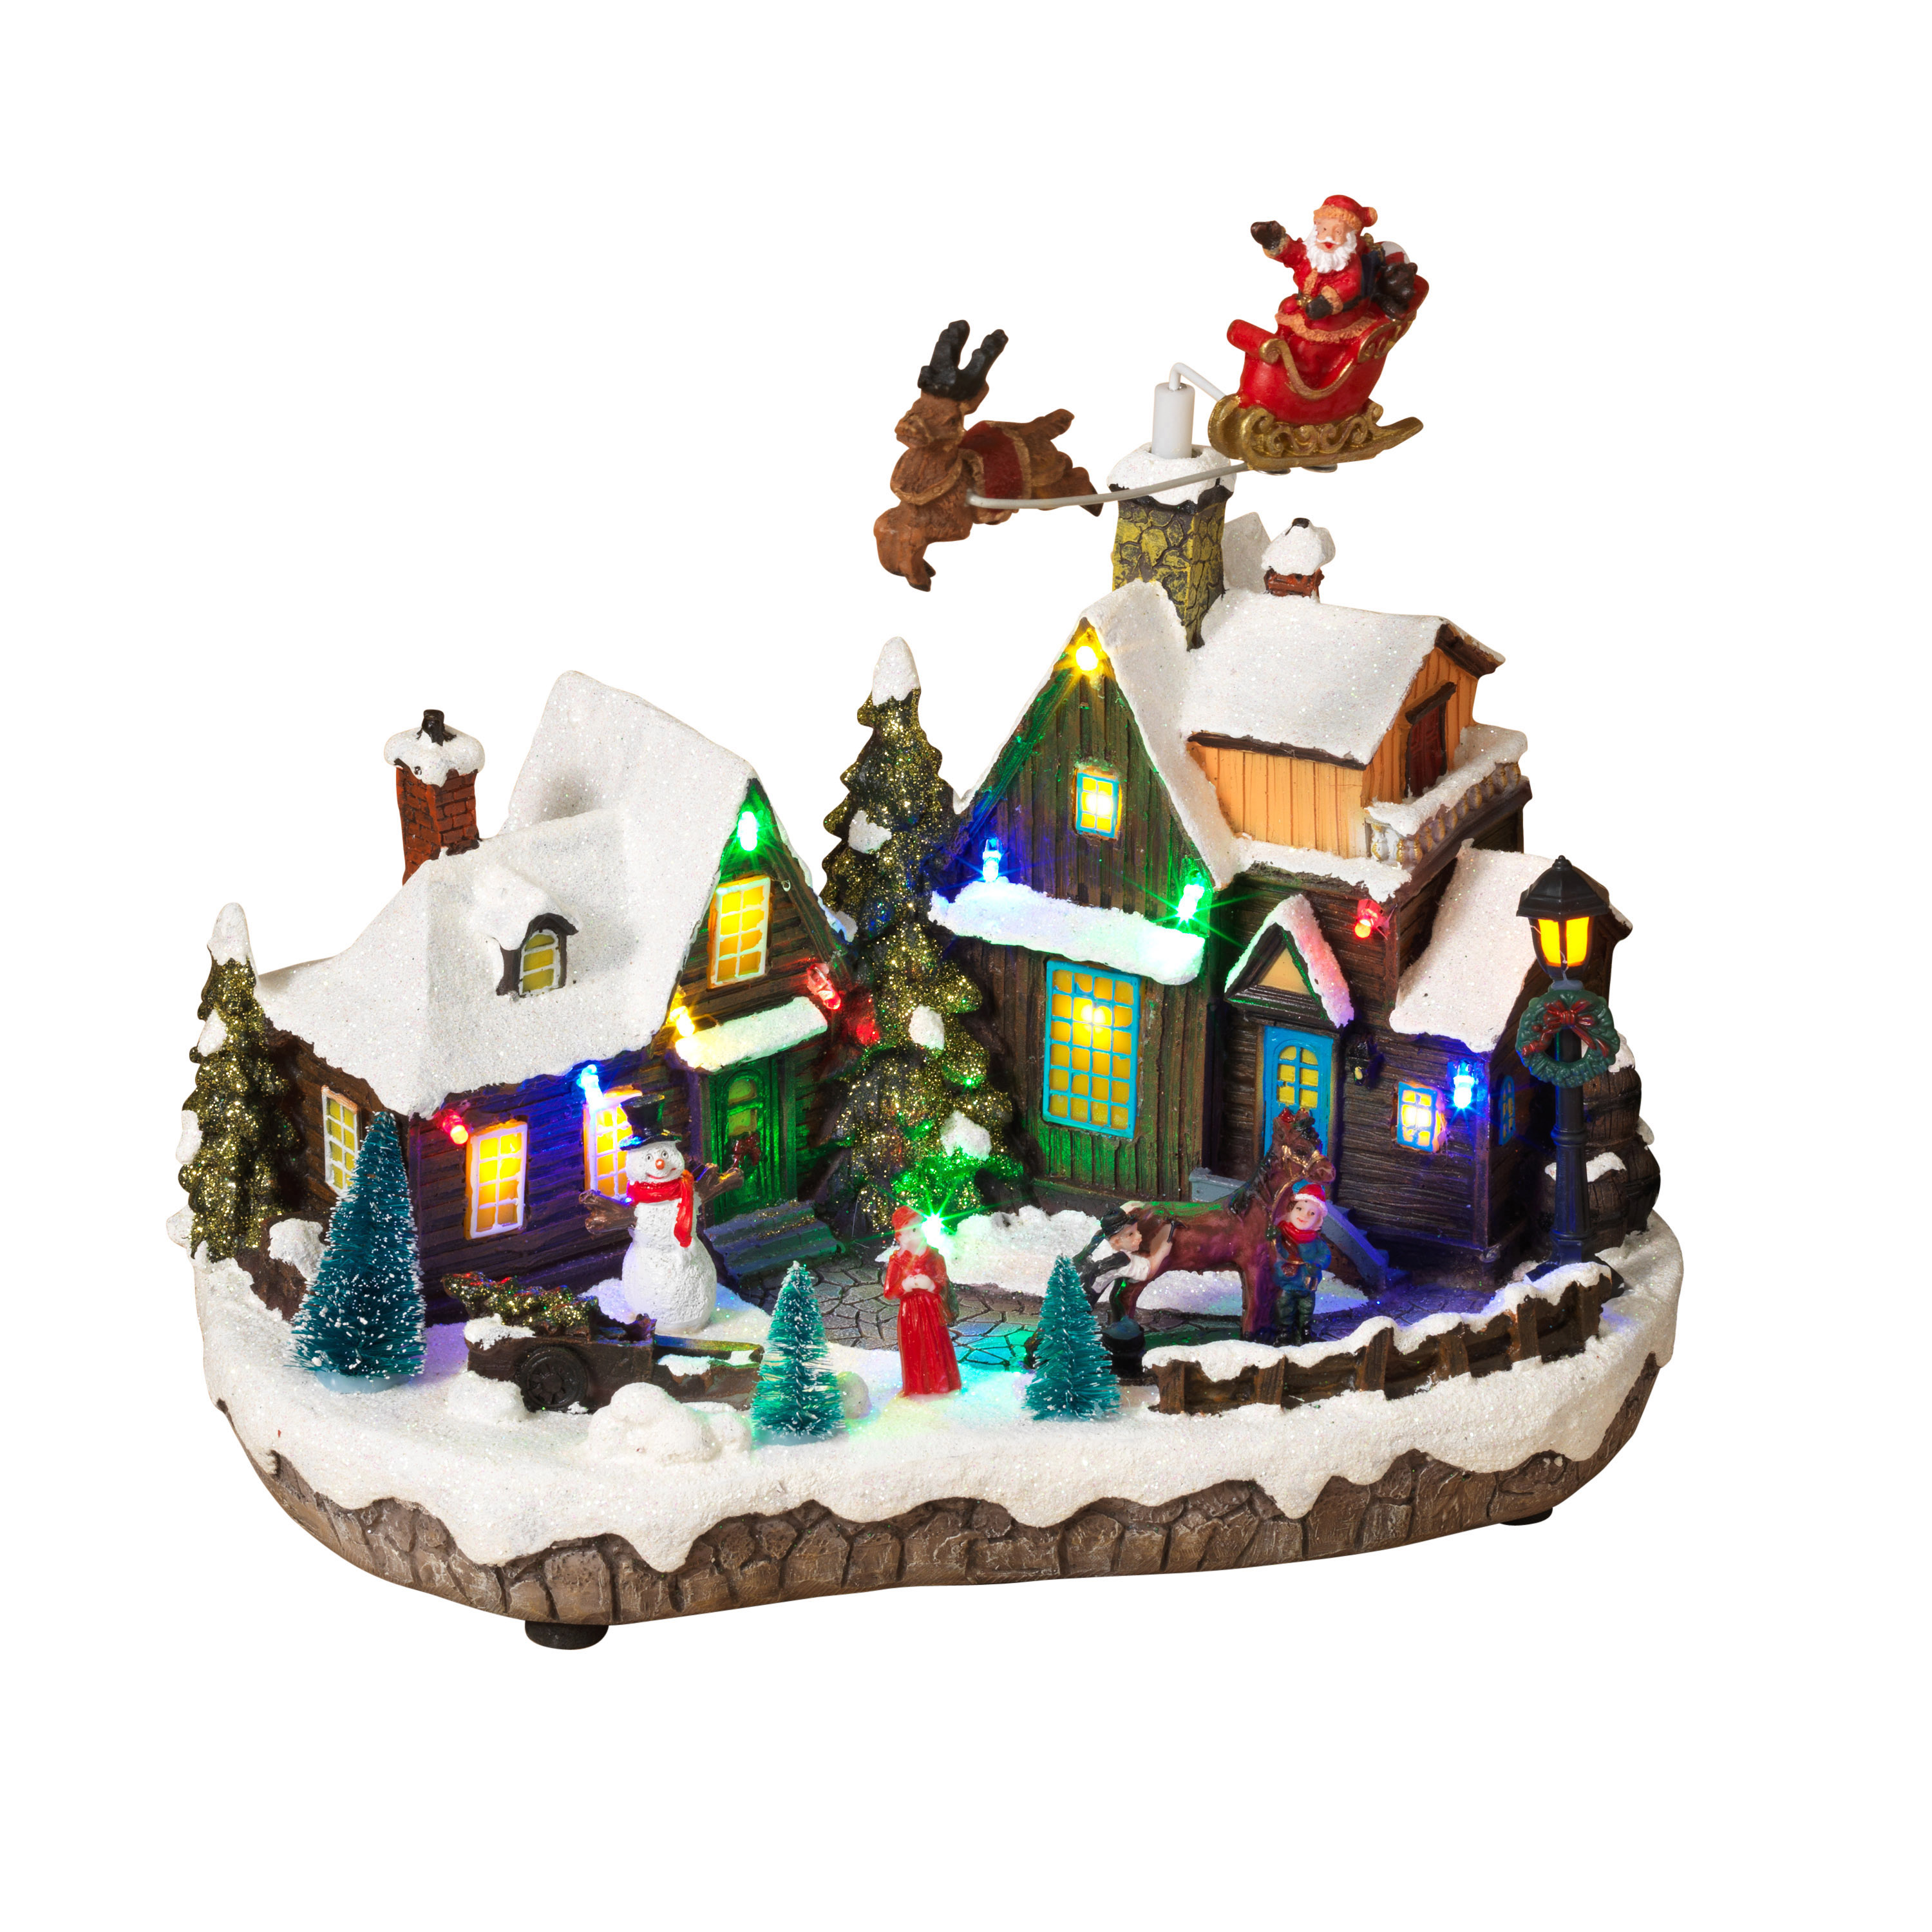 The Gerson Companies Lighted Holiday Village Scene with Seasonal Accents and Moving Figurines